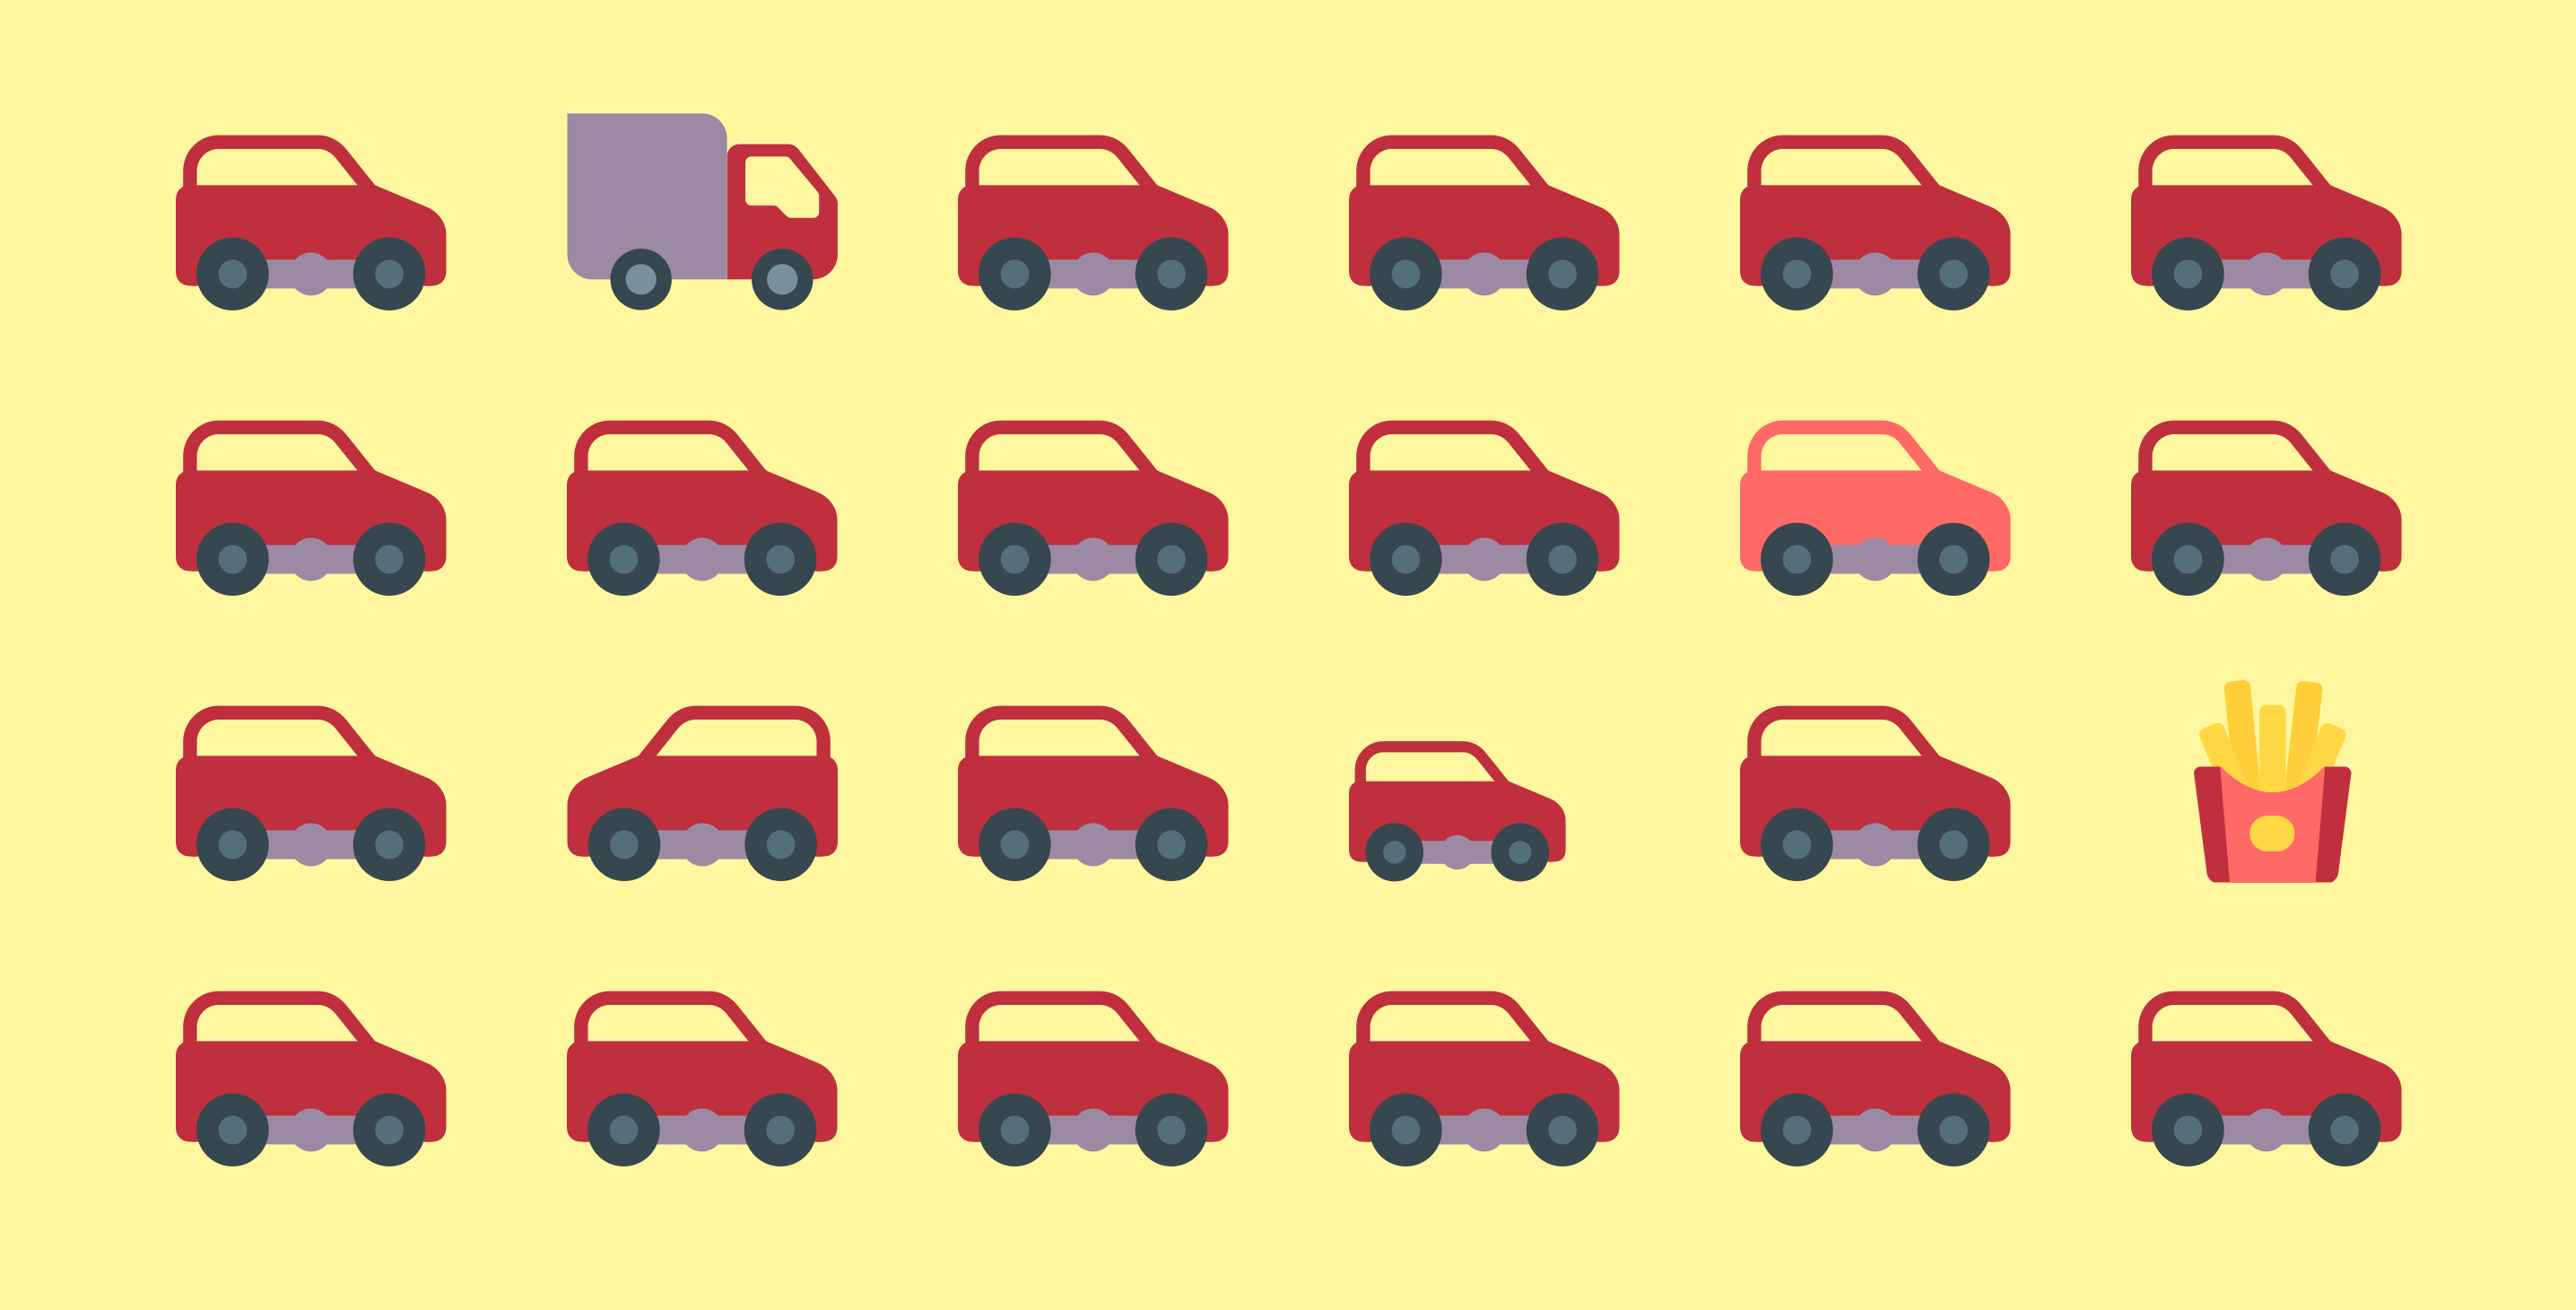 Illustration depicting a grid of cars, some being modified slightly in size, color, position, etc.